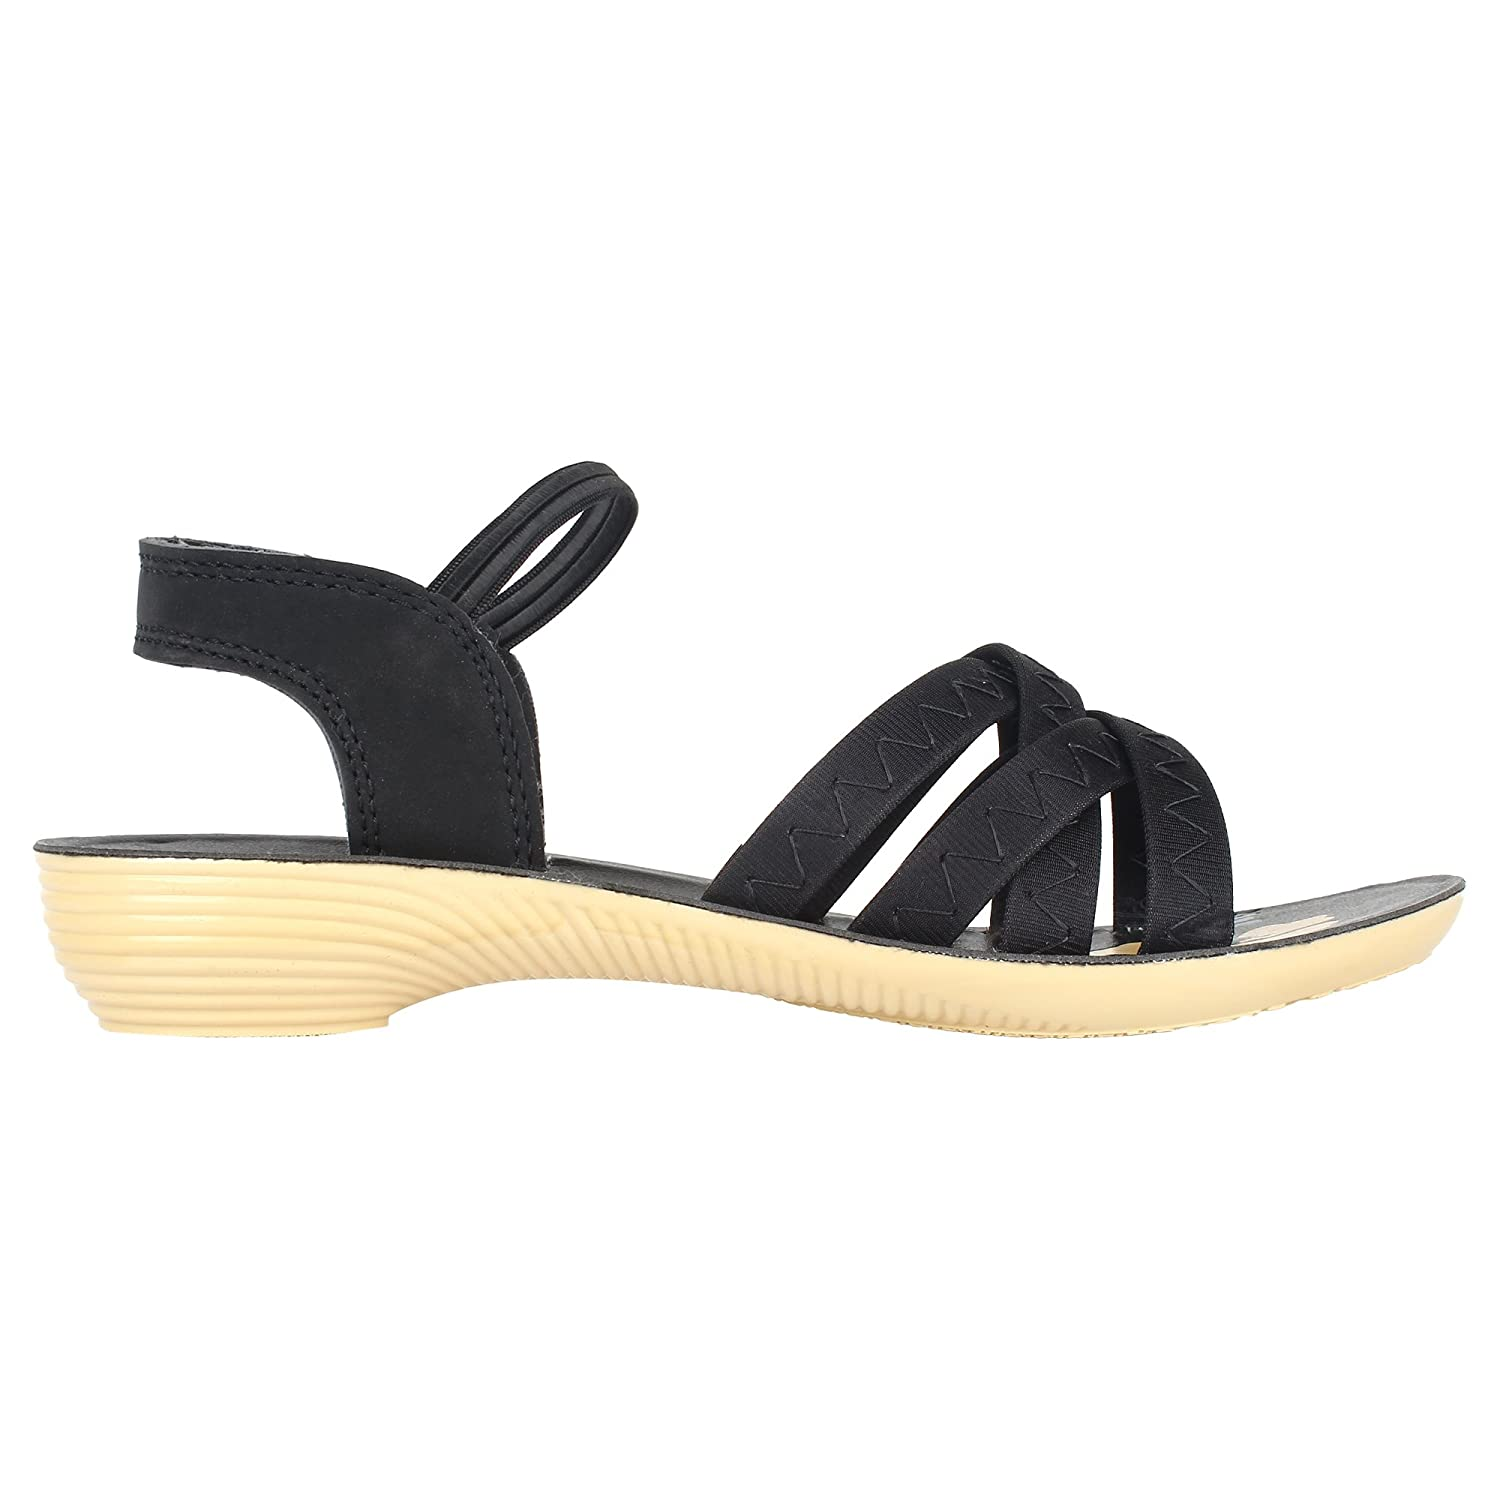 a75910d0e Earton Women Black-983 Fashion Sandals  Buy Online at Low Prices in India -  Amazon.in